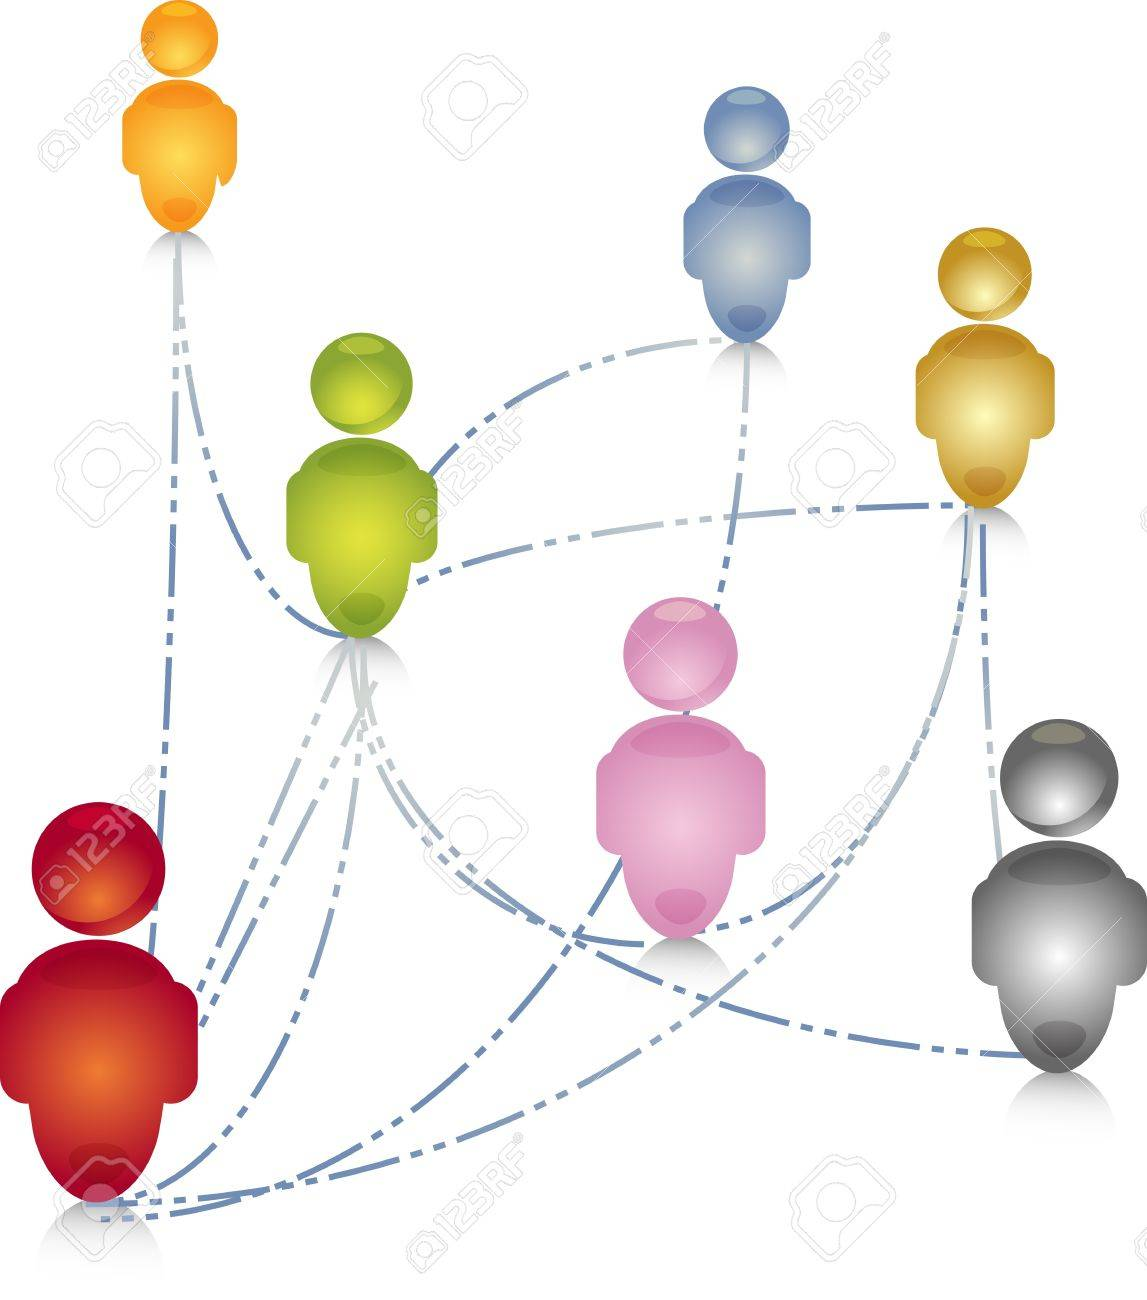 Social network group people community connection links illustration Stock Illustration - 10287590